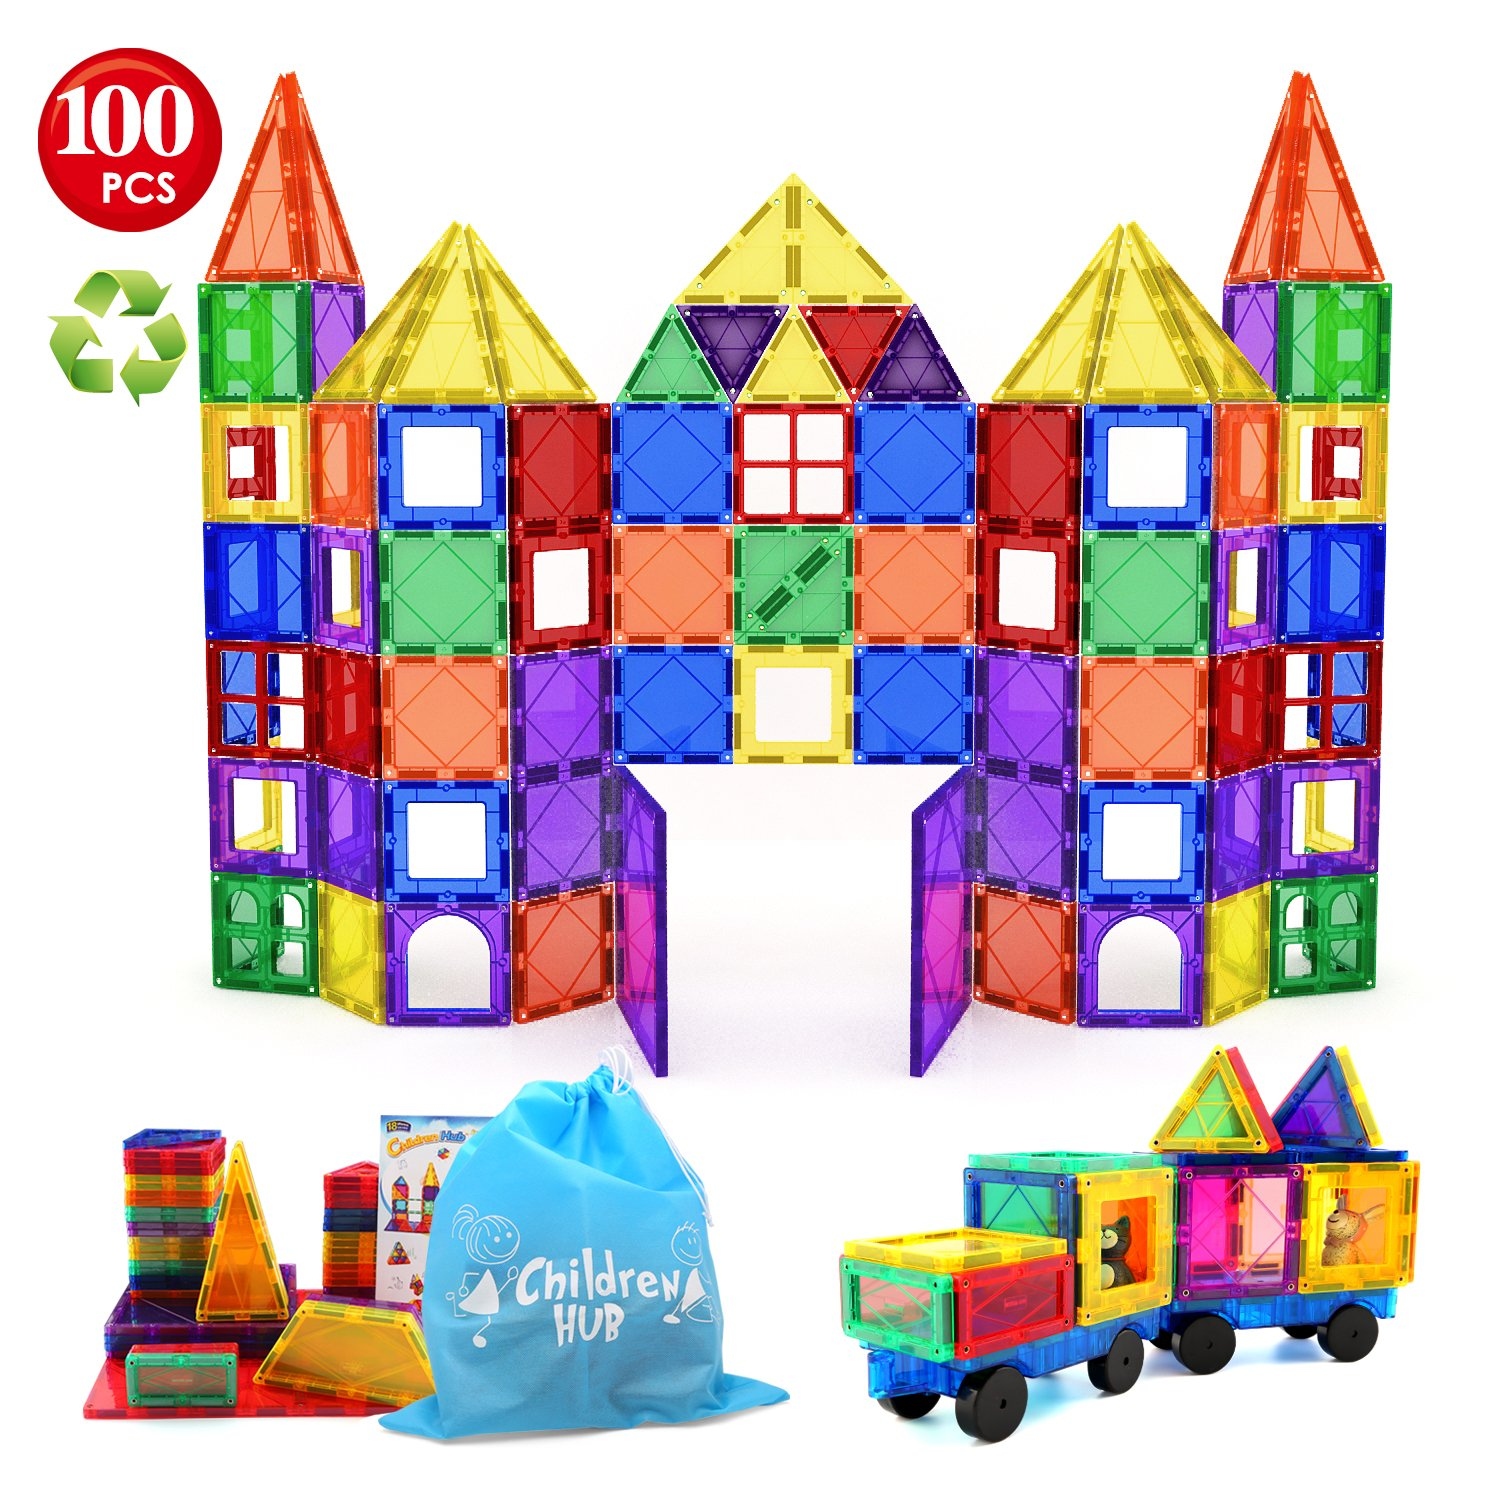 Children Hub 100pcs Magnetic Tiles Set – Building Construction Toys For Kids – Upgraded Version Review